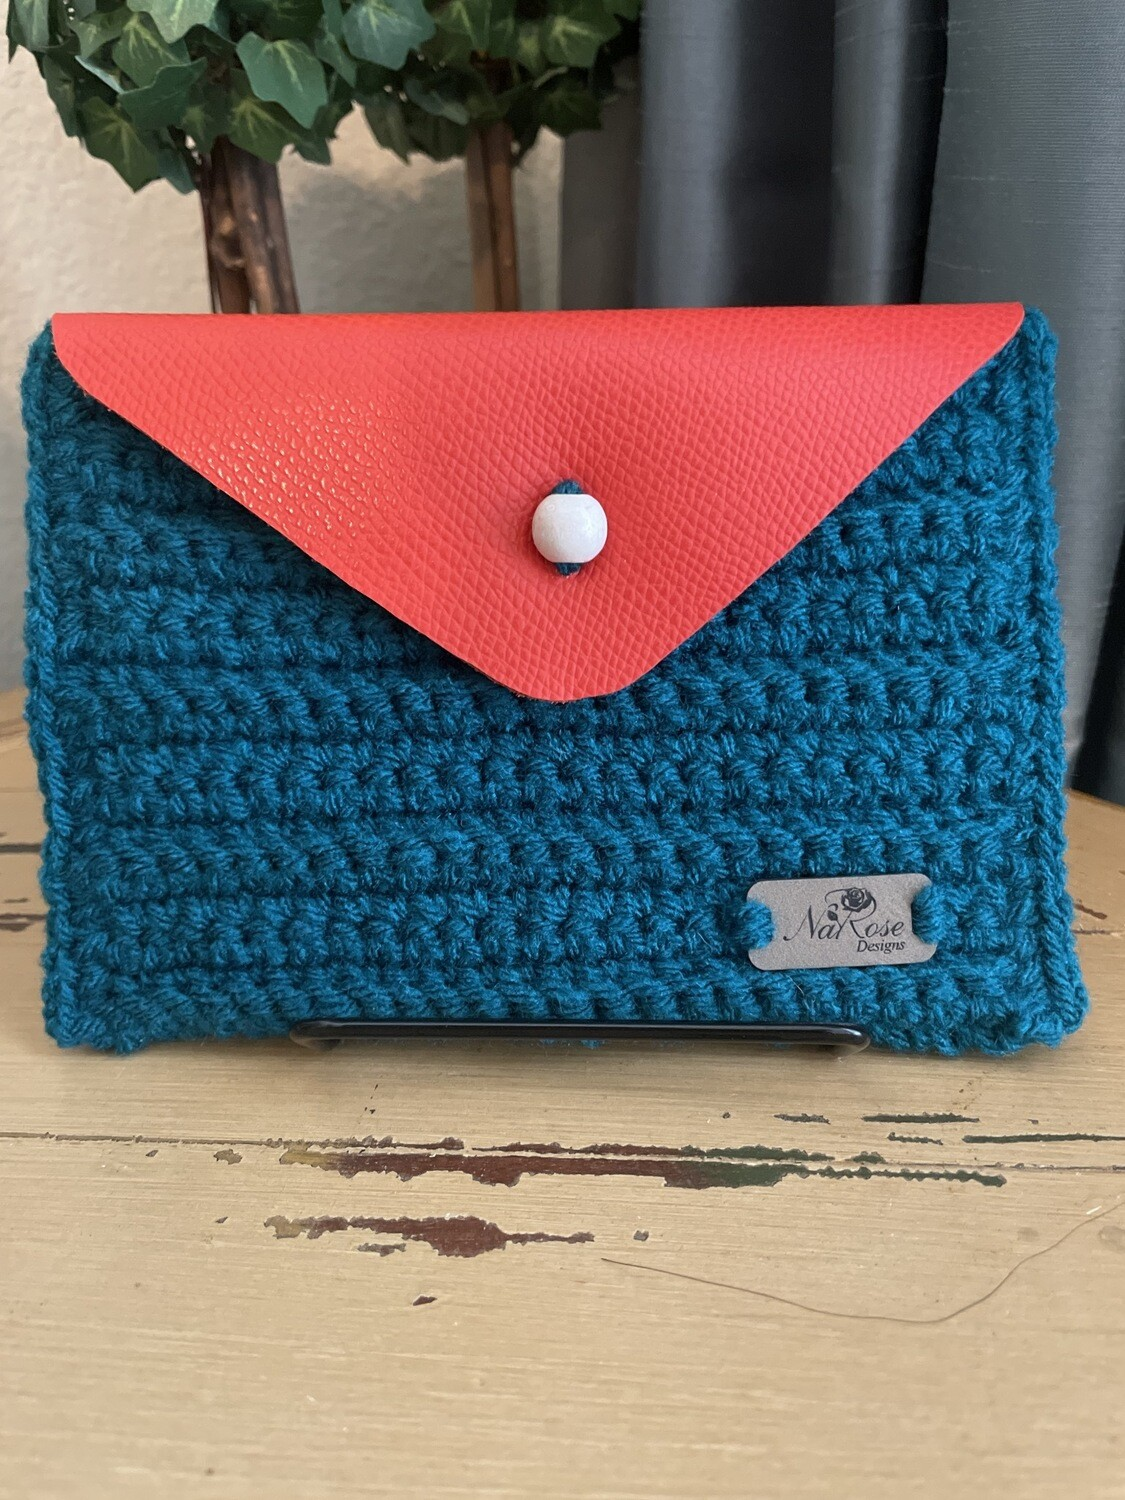 The Compliment Clutch